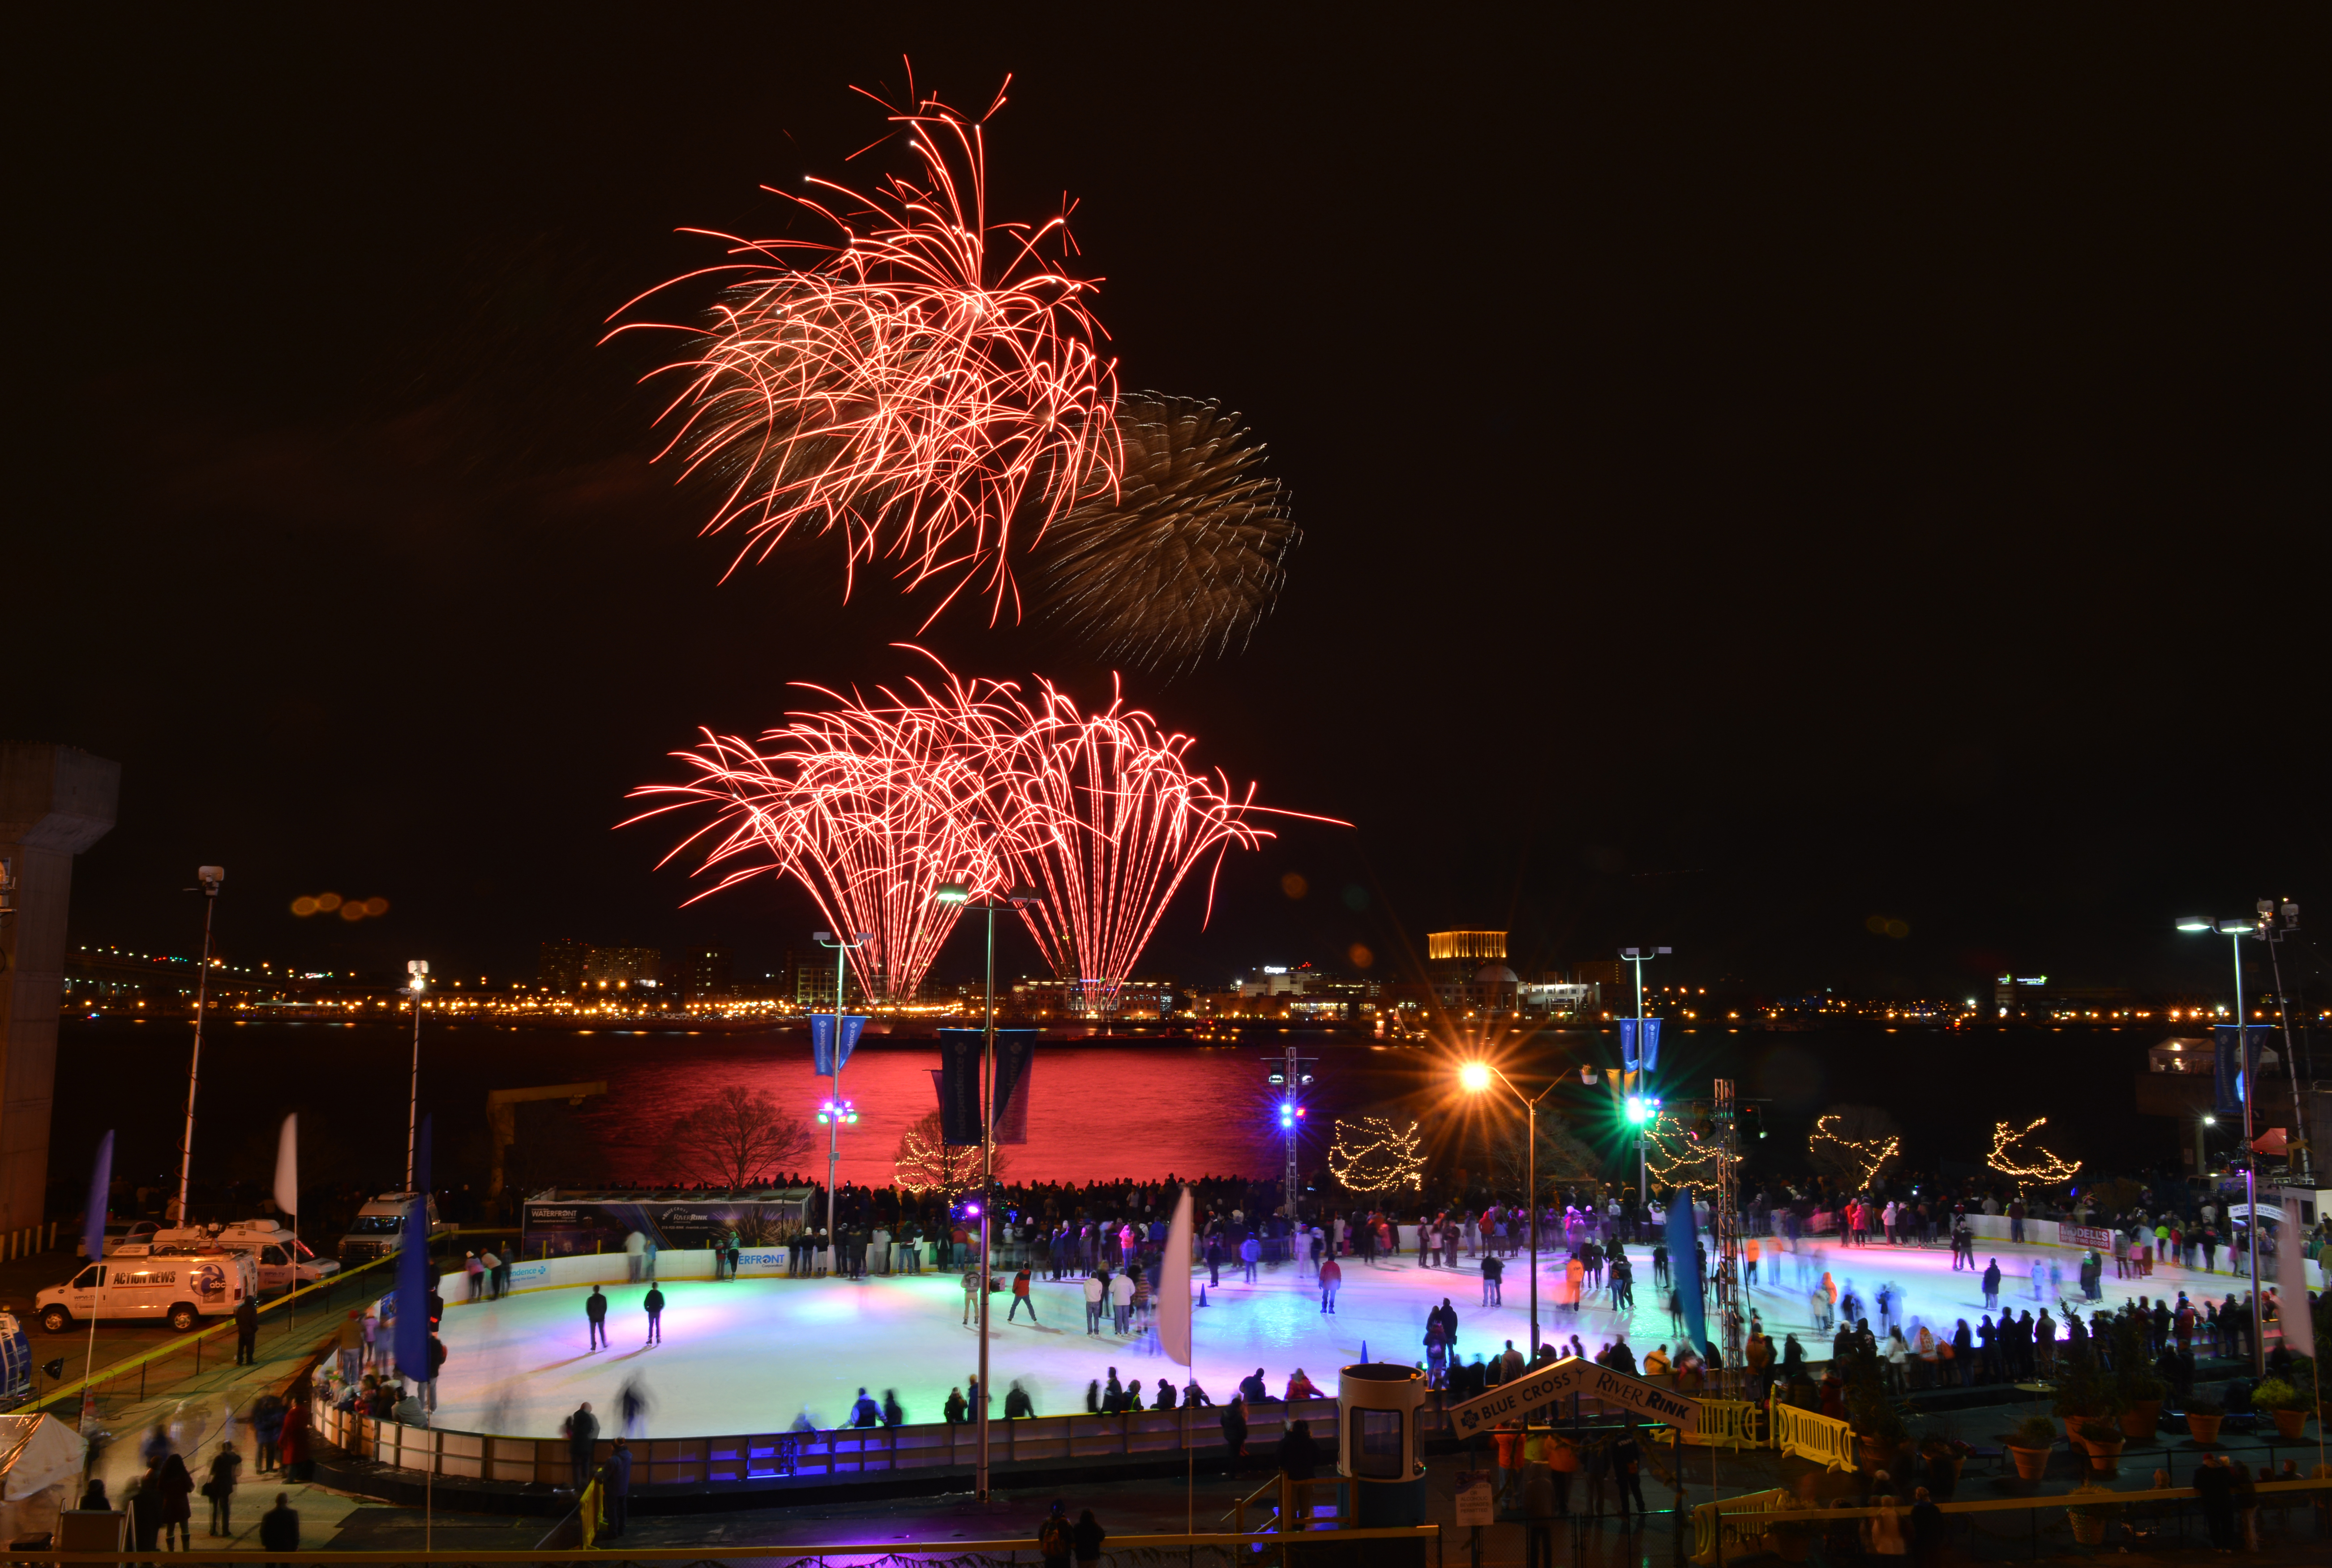 Waterfront Winterfest at Penn's Landing, Photo by Ed Savaria